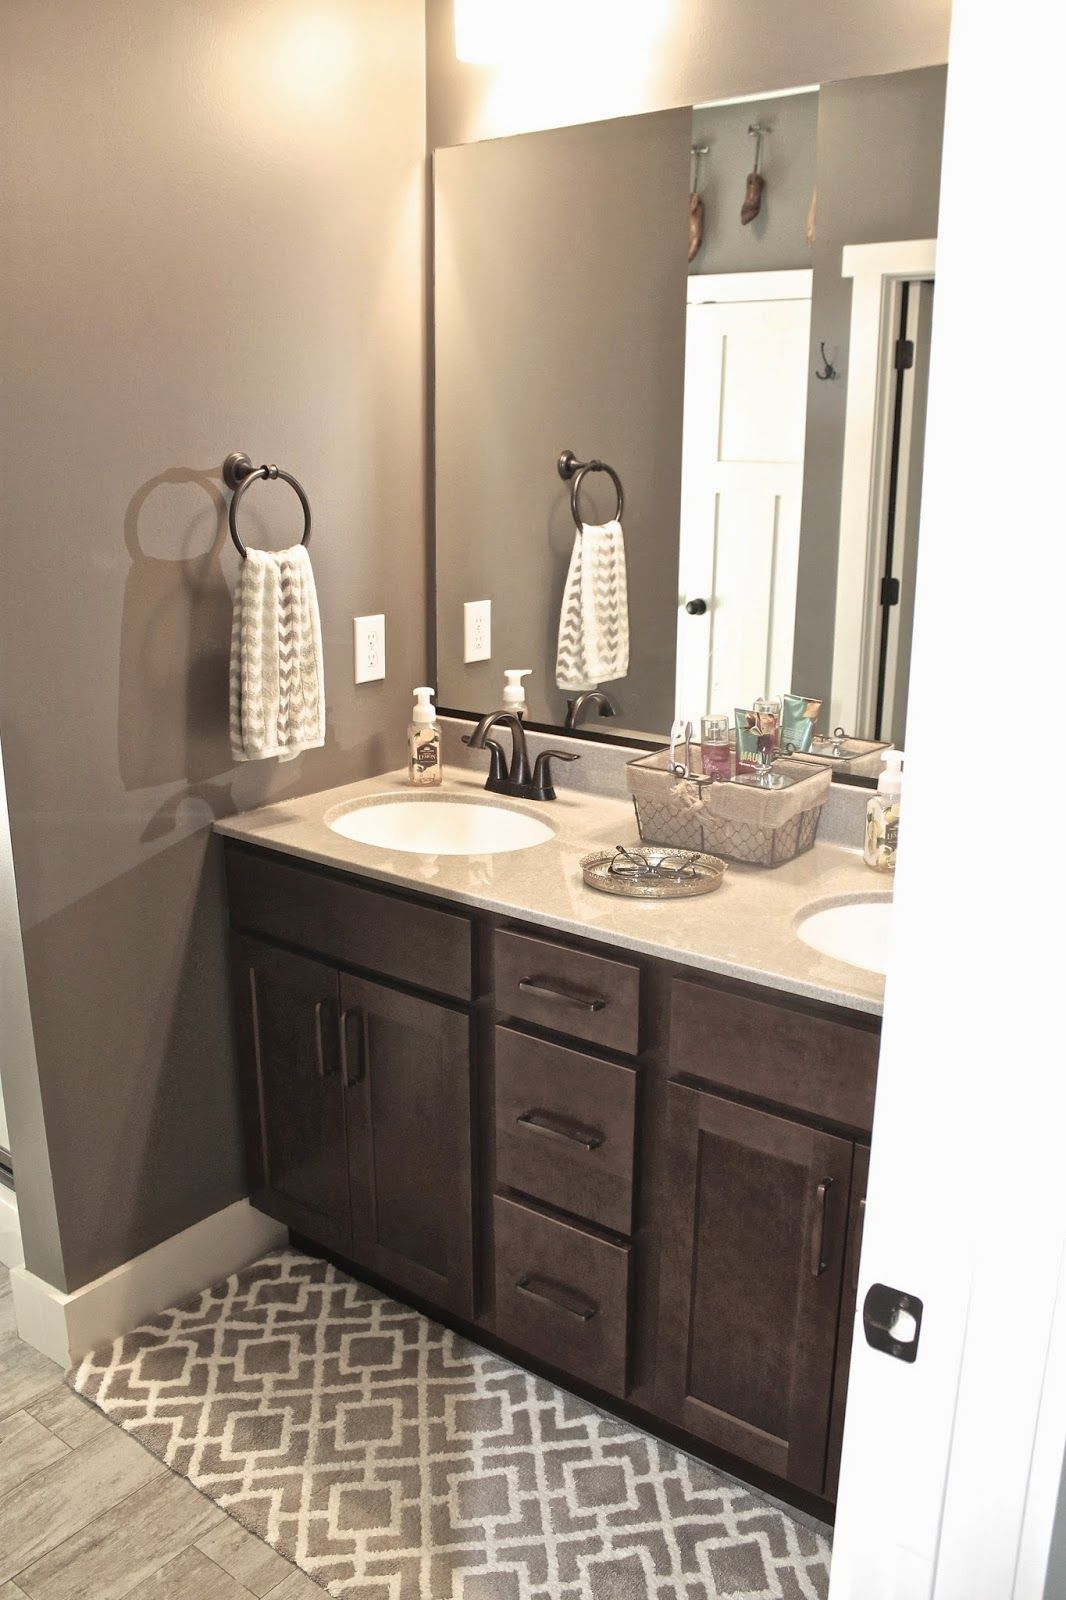 Gray colors for bathroom walls - Find This Pin And More On Bathrooms Wall Color